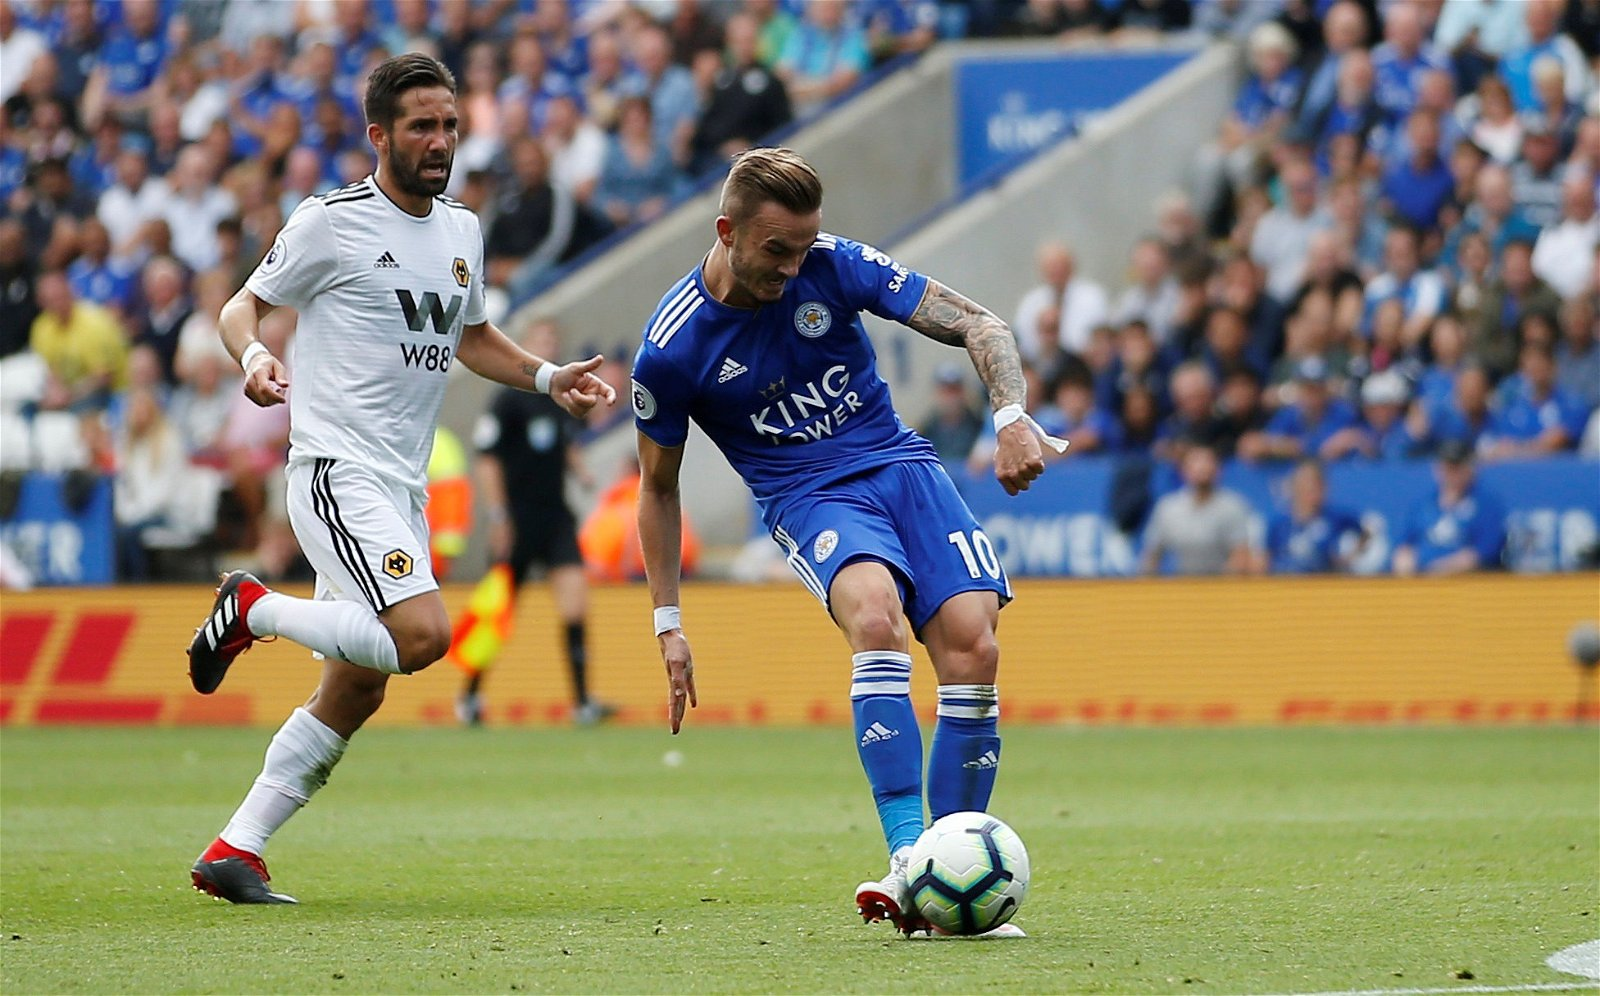 James Maddison vs Wolves